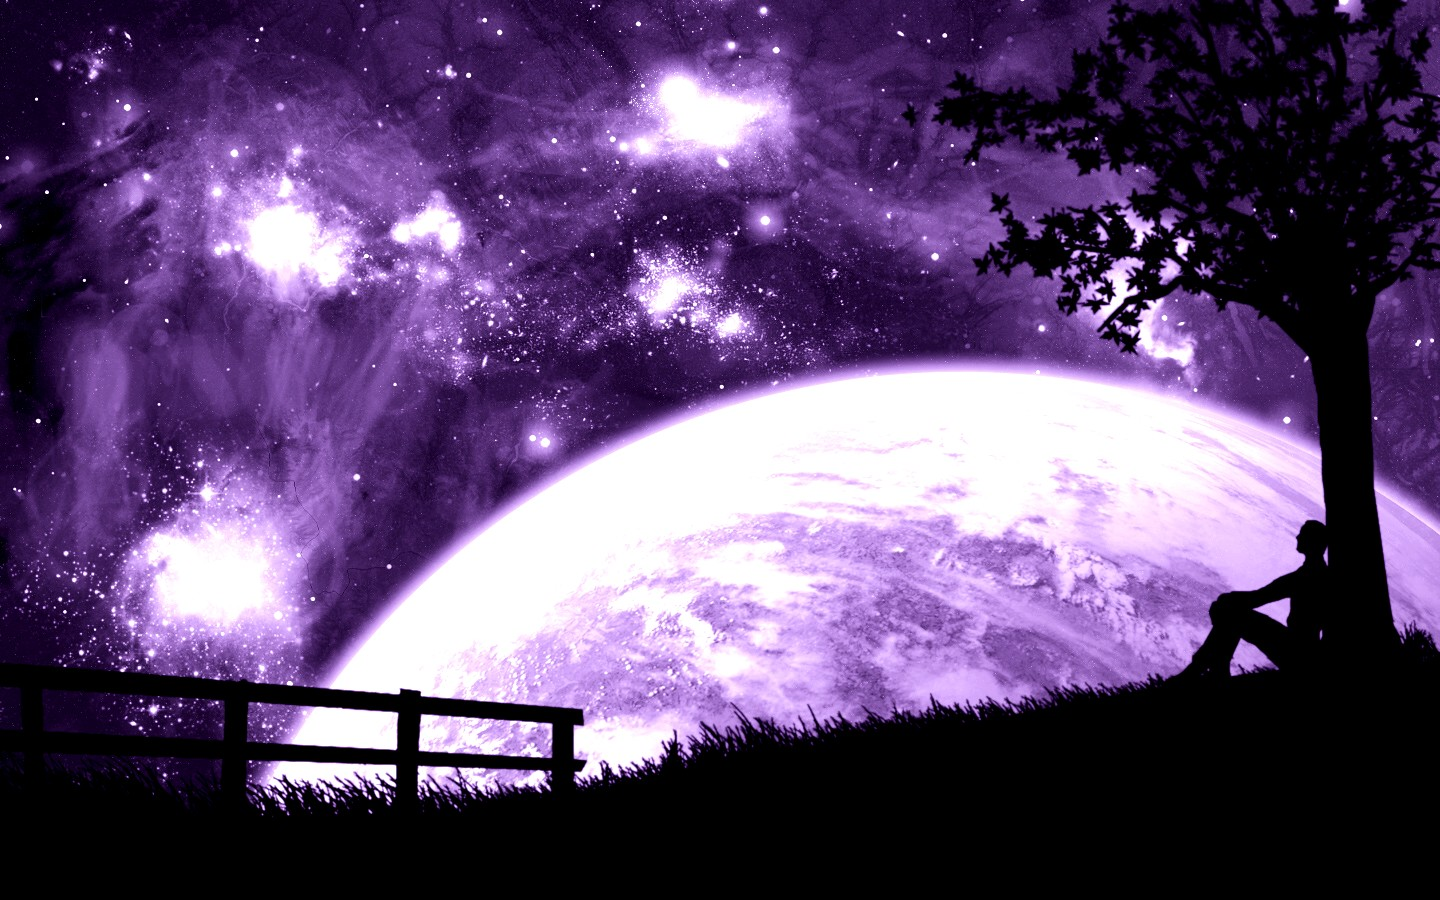 Cool Purple Wallpaper   Desktop Backgrounds 1440x900